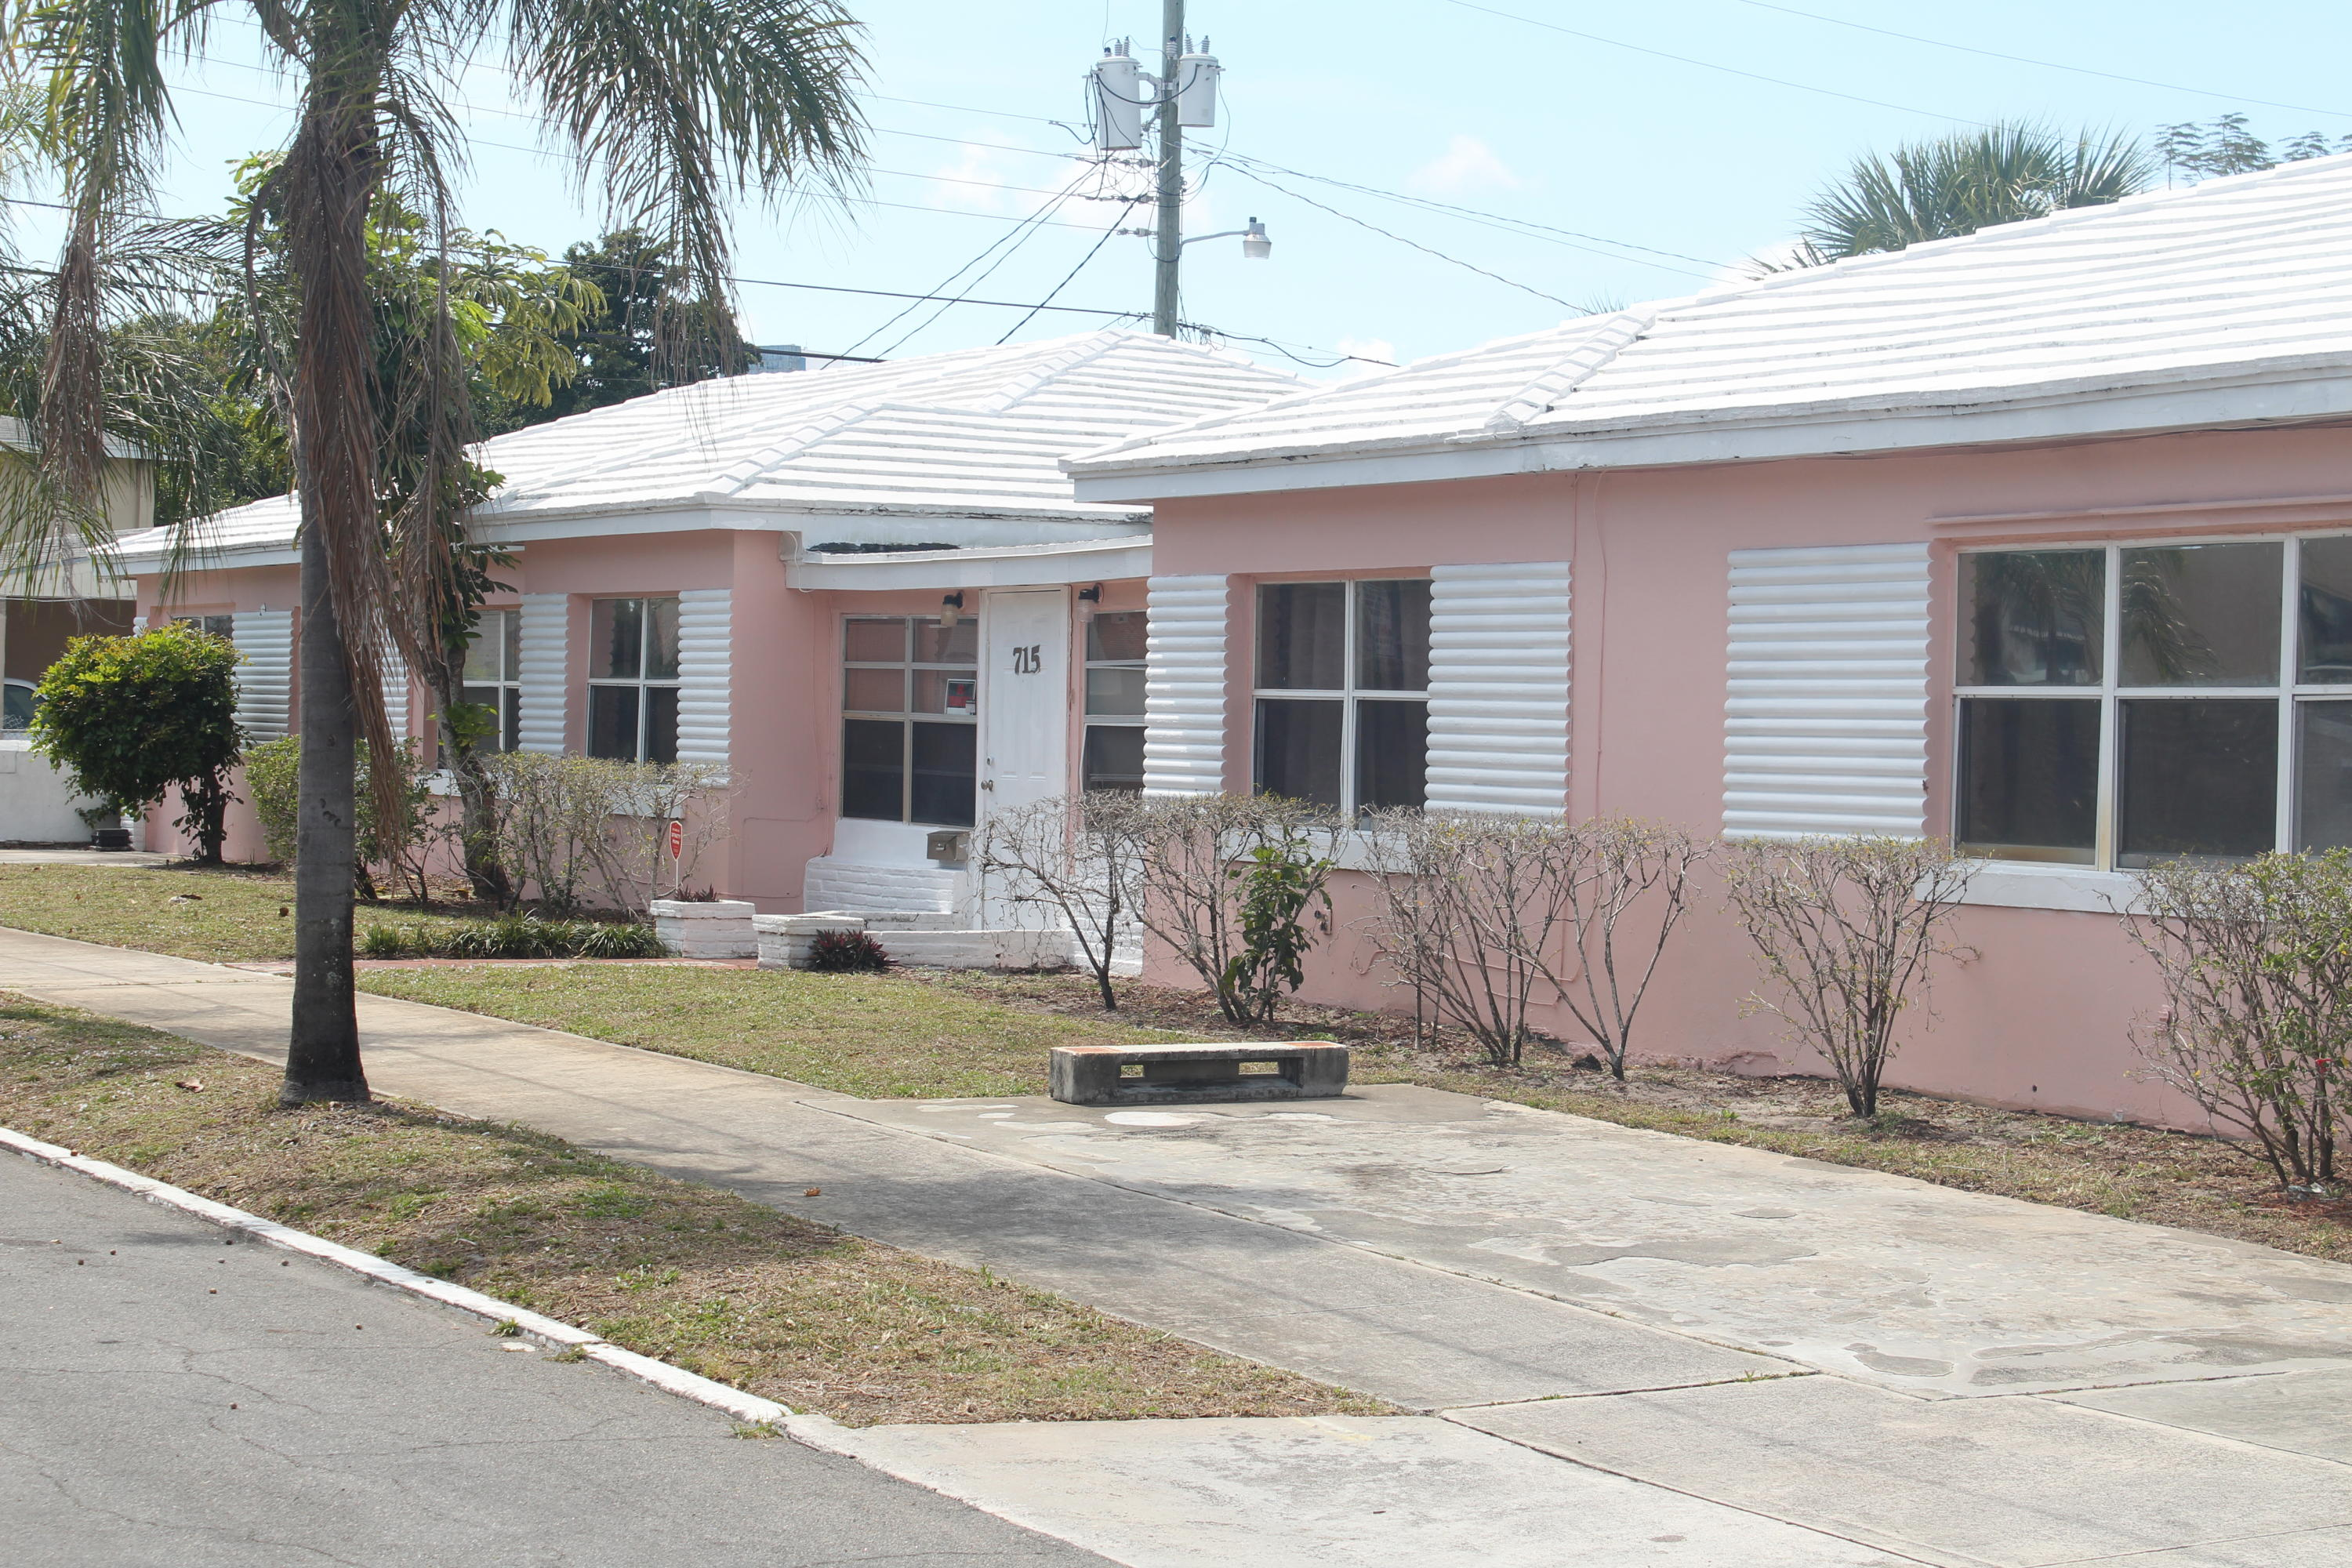 Approved Assistance Living Facility (ALF)located minutes from Good Samaritan Hospital and City Place. This centrally located facility can accommodate 12 resident. Make your offer! This property will not last long.